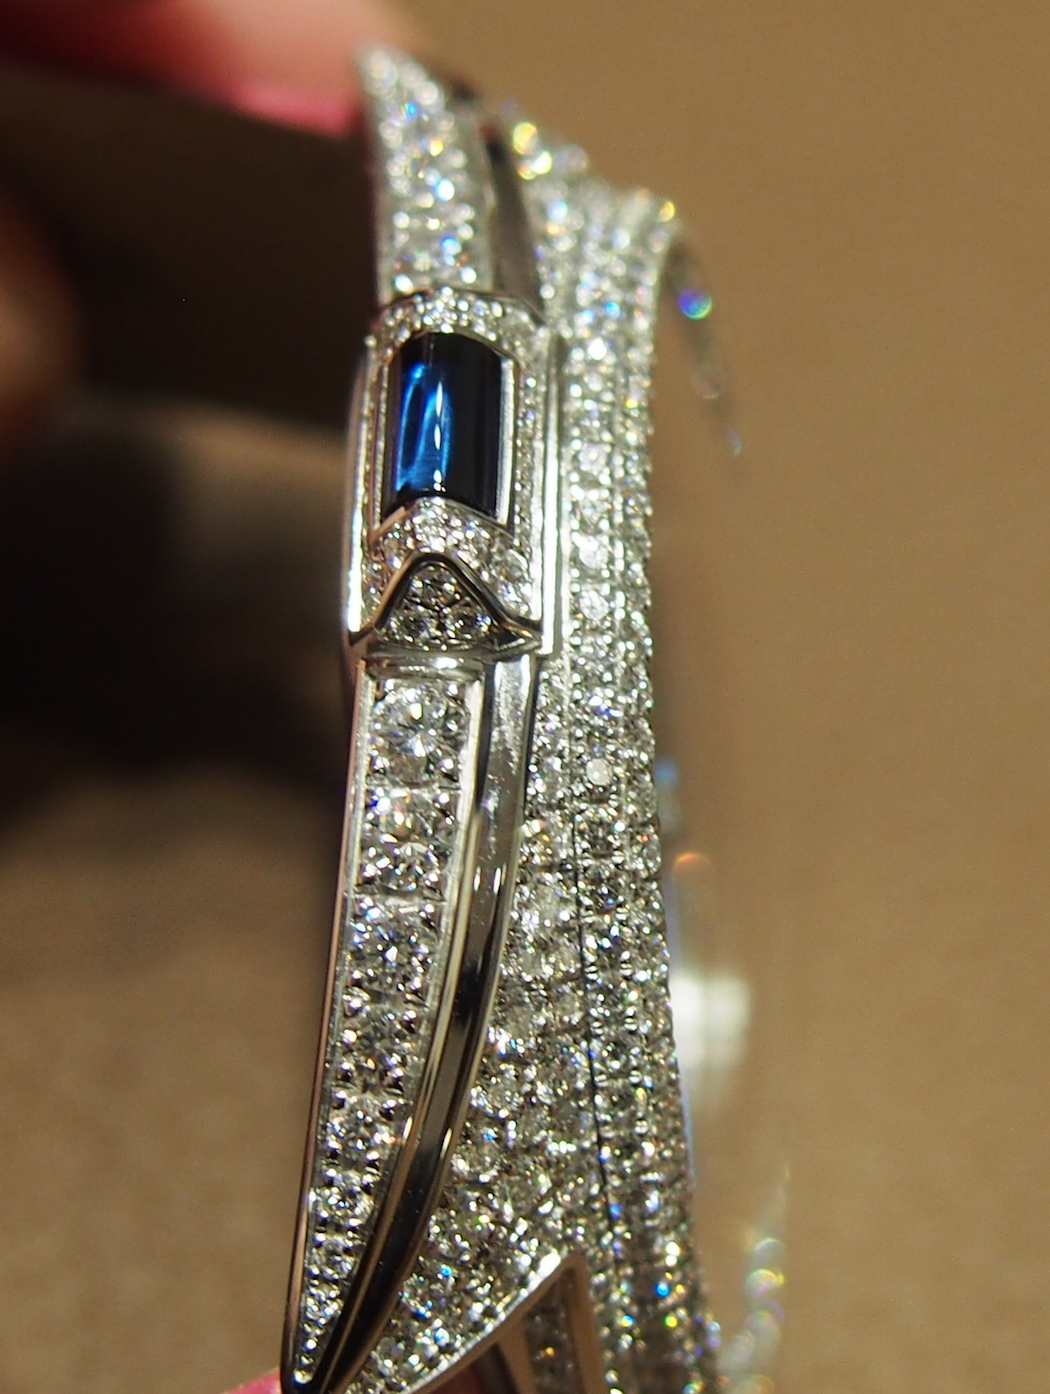 High diamond version of the Cle de Cartier watch from profile view